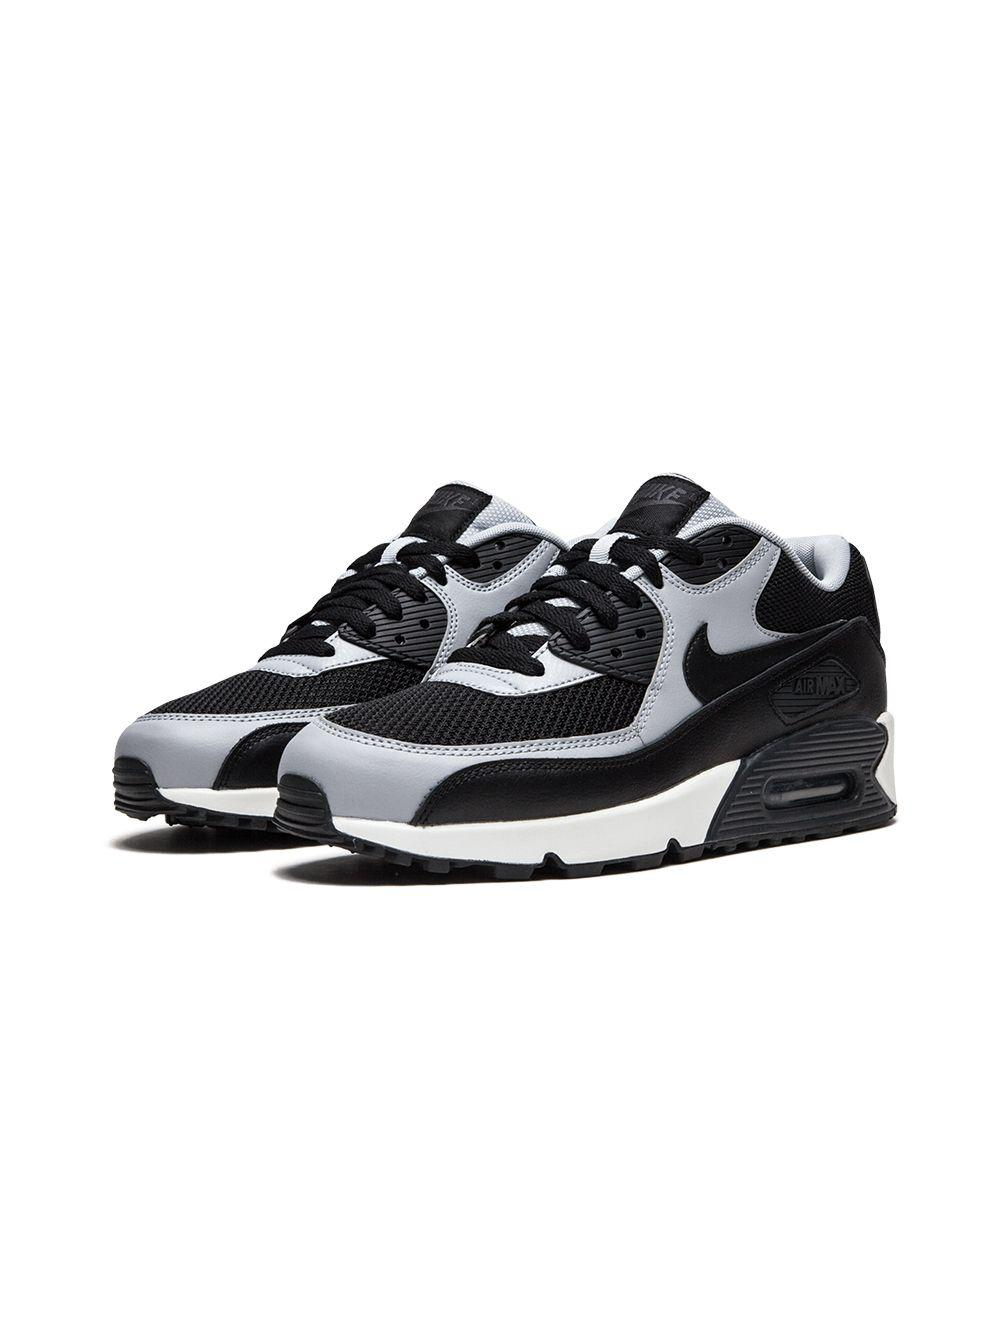 quality design 876a1 26dd8 Nike Air Max 90 Essential Sneakers in Black for Men - Lyst